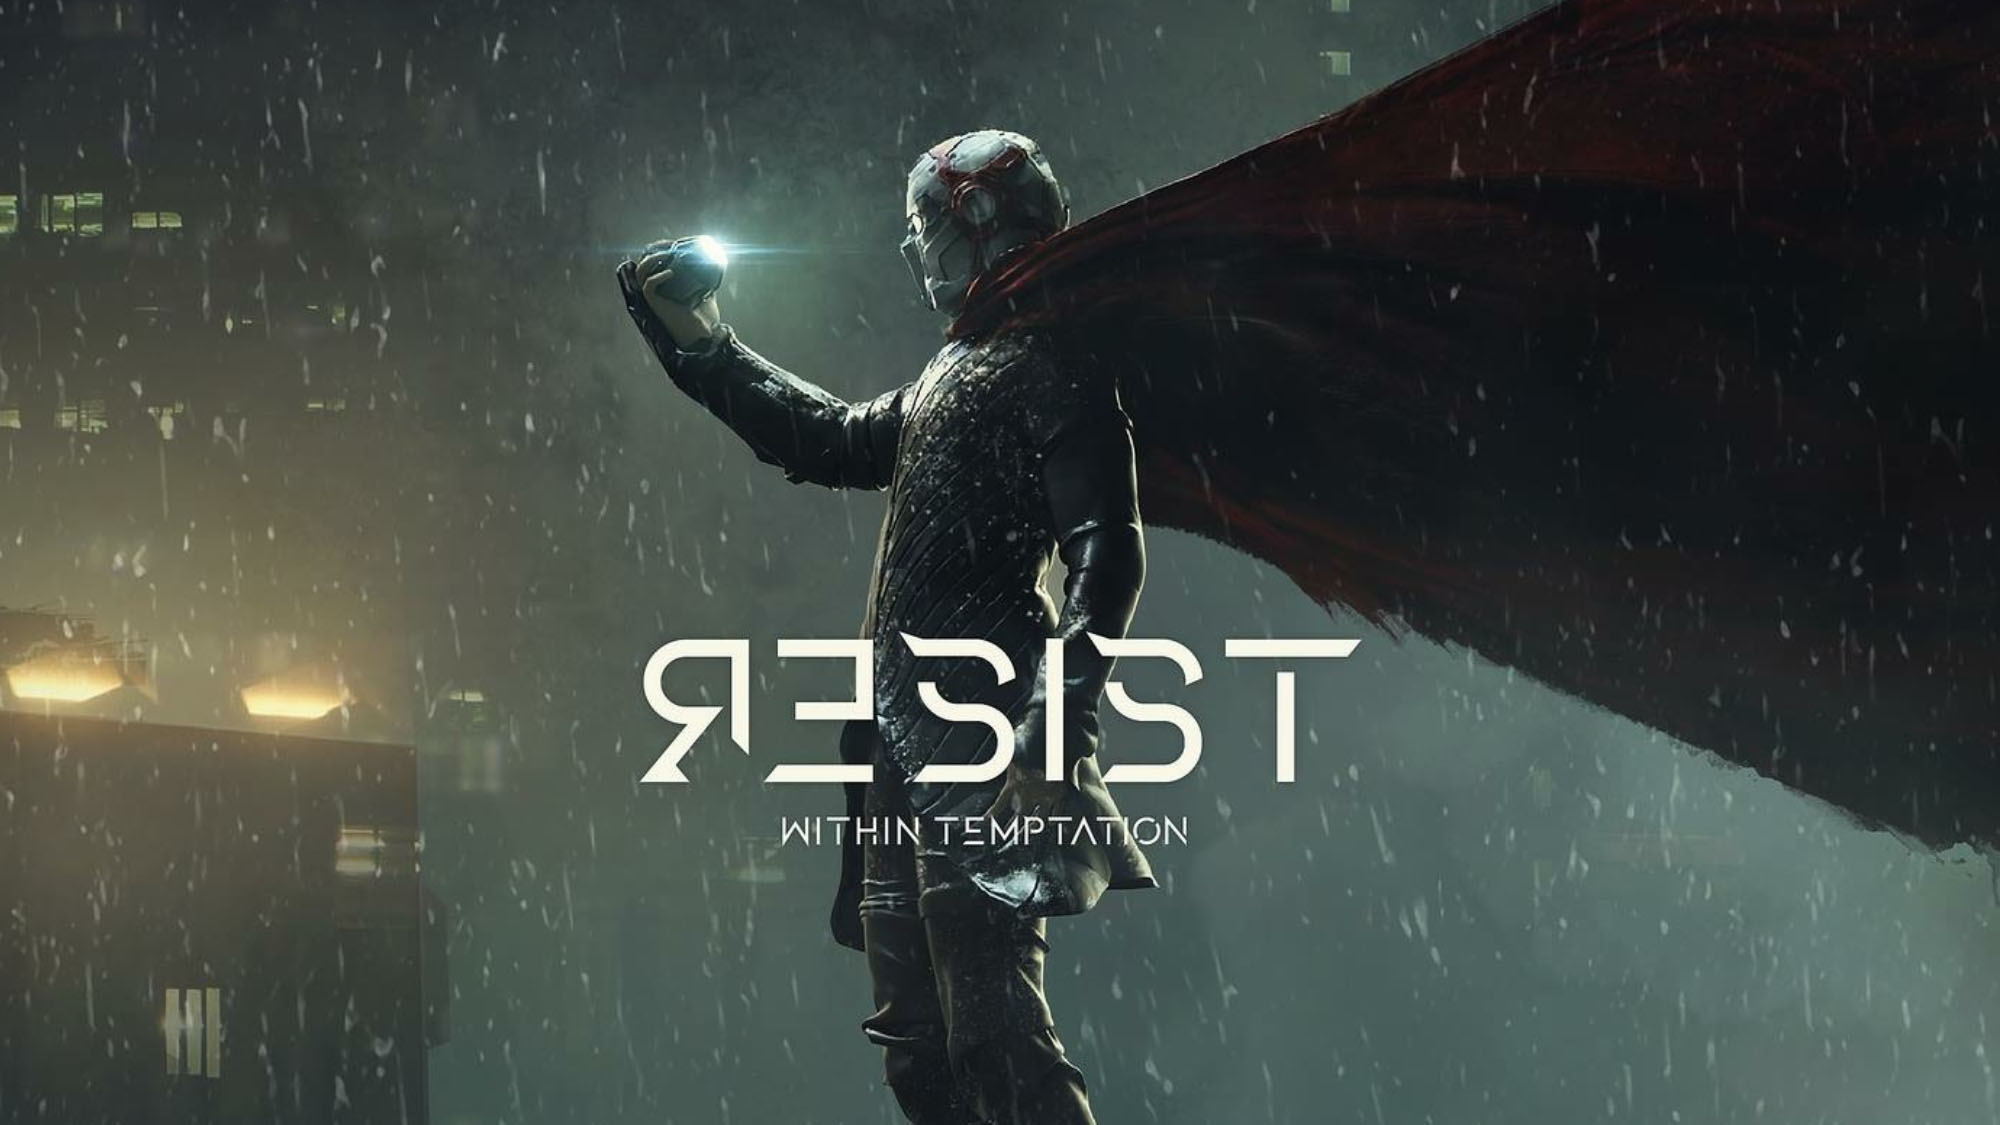 New Within Temptation single The Reckoning out now